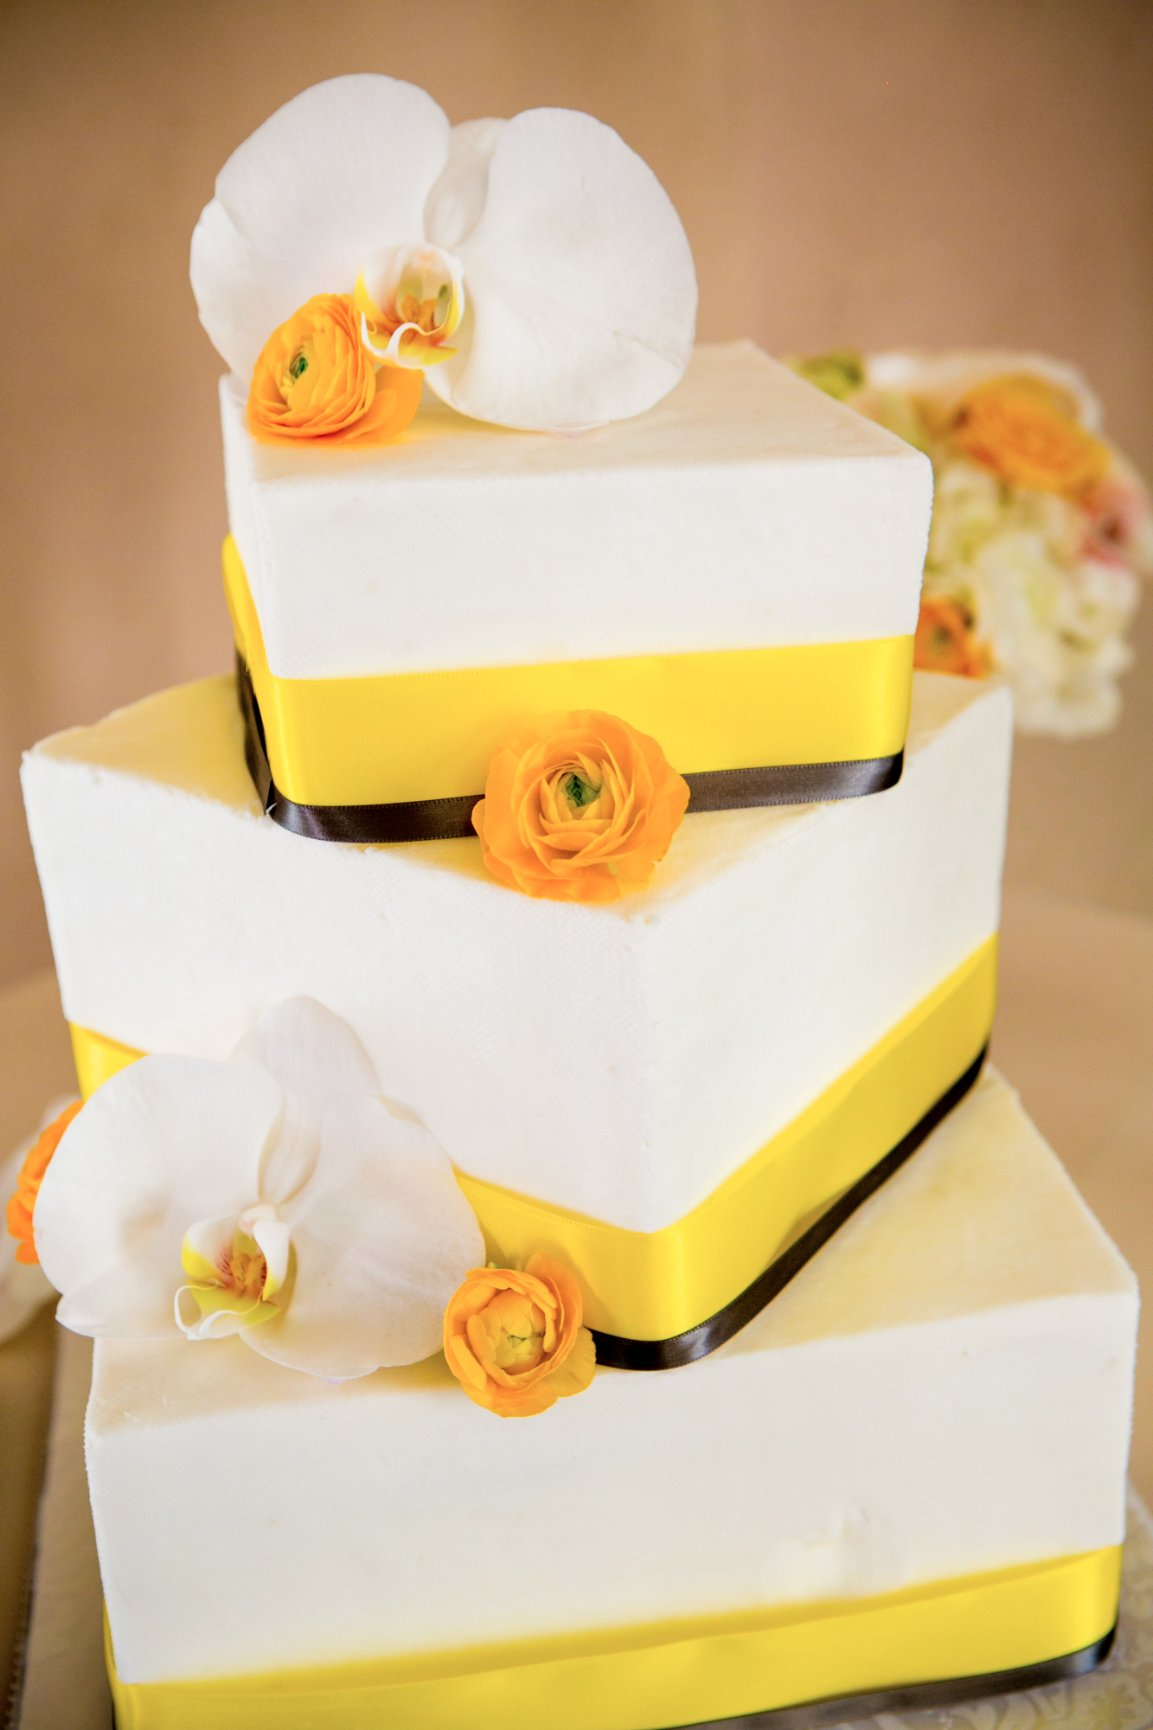 Wedding Cake Trends - Brett Charles Rose Photography